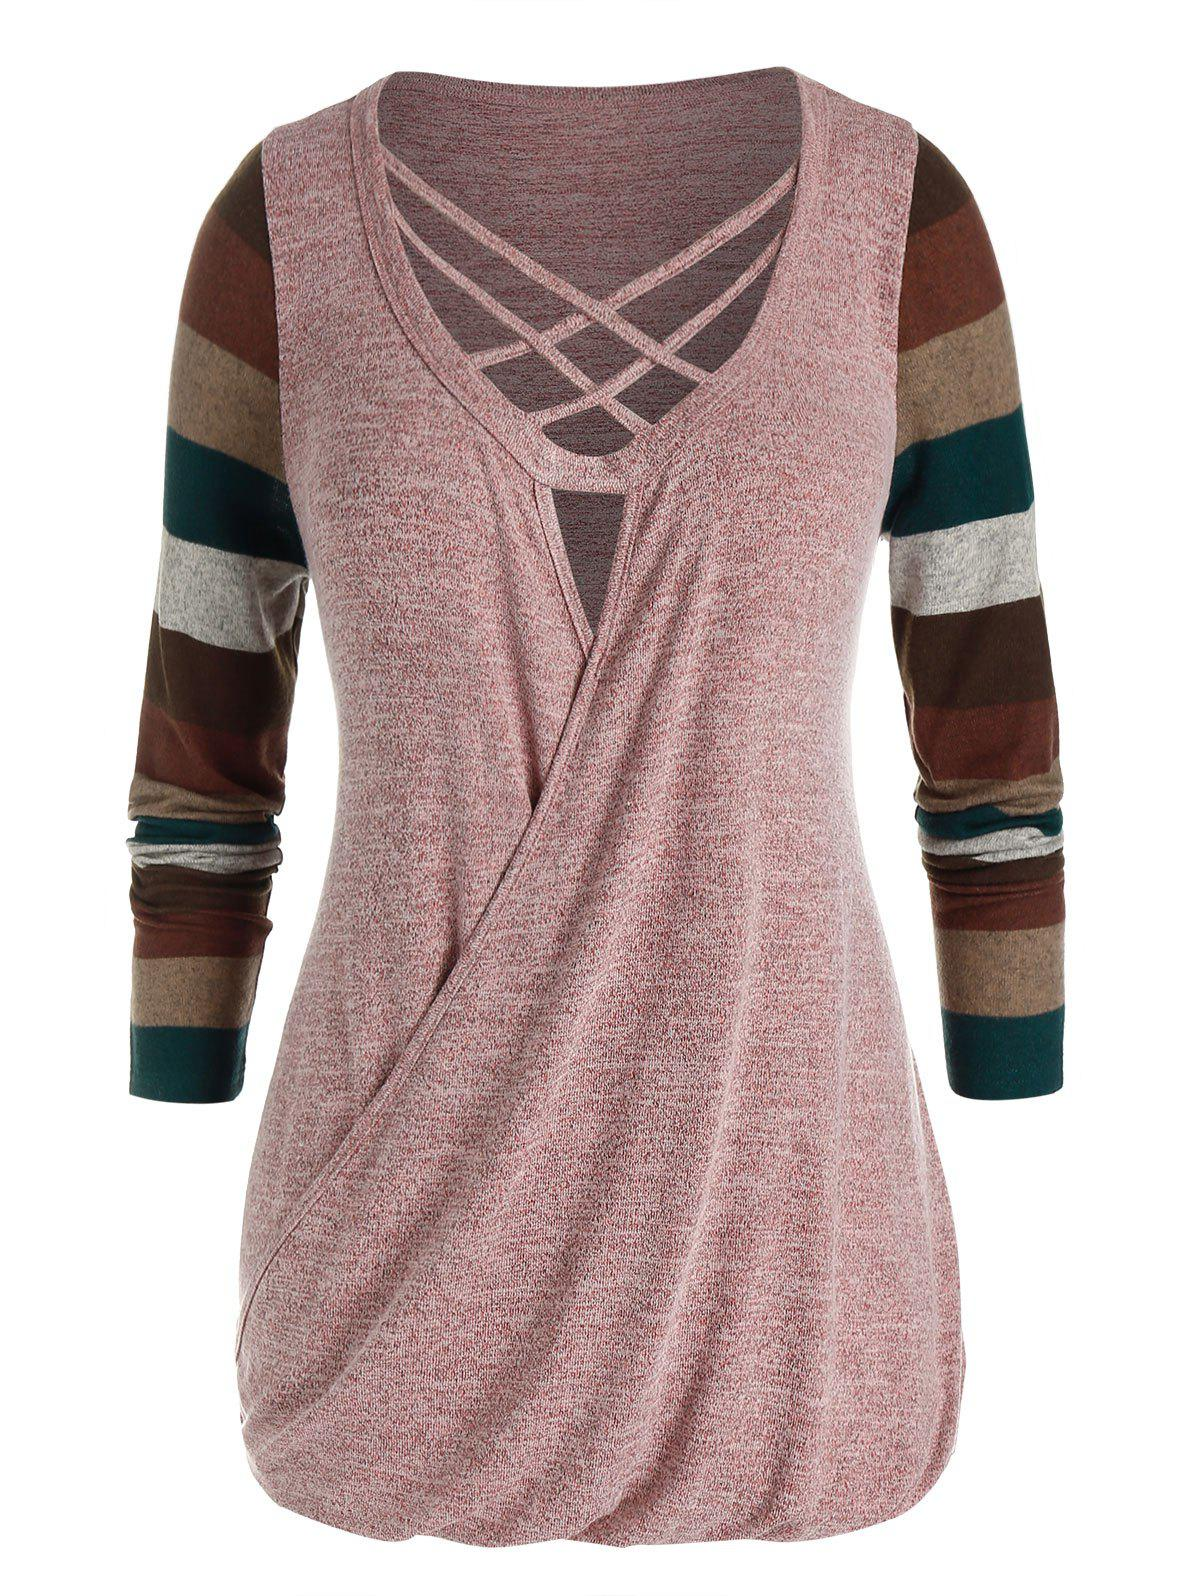 Plus Size Striped Lattice Blouson Knit Tunic Tee - LIGHT PINK 5X